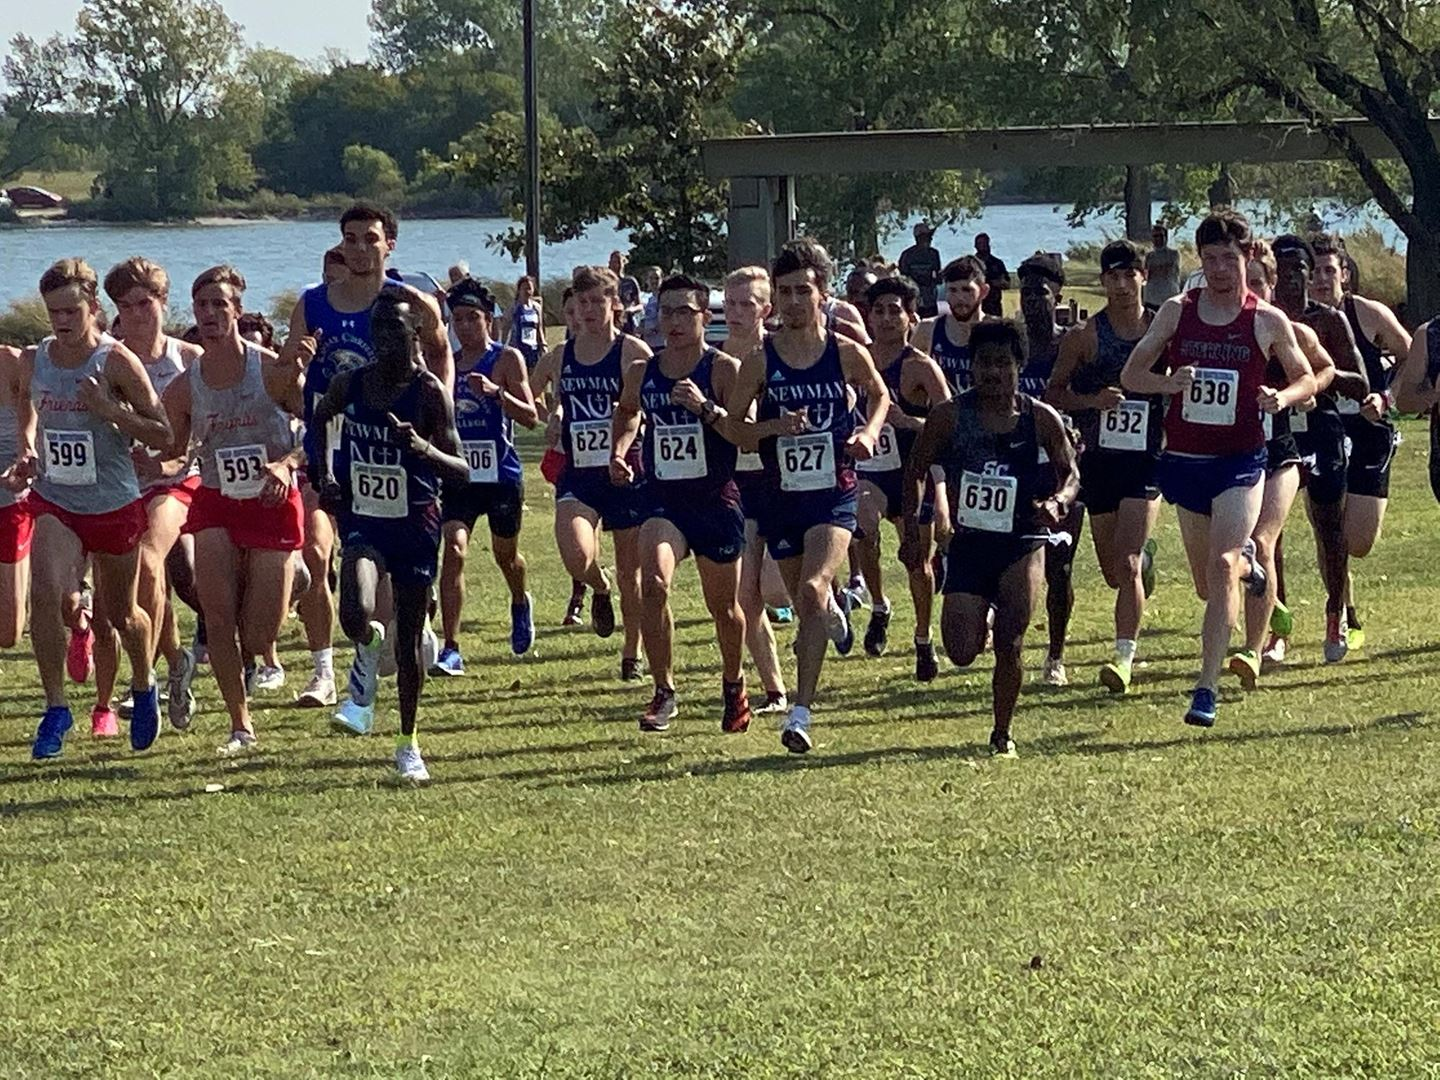 New MIAA ruling allows cross country to compete as a team